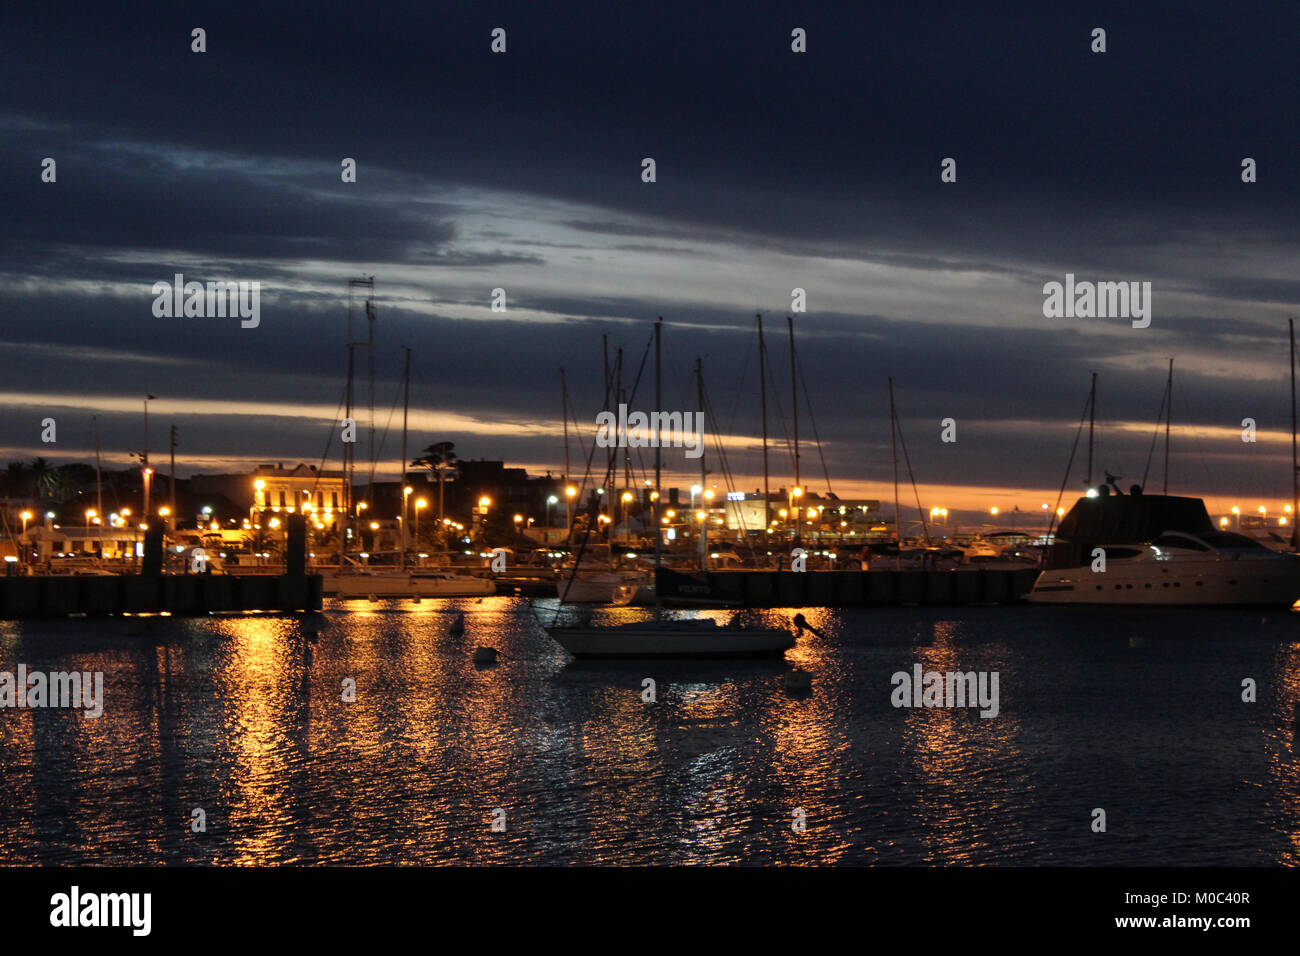 Lovely sunset at Punta del Este, Uruguay. Stock Photo